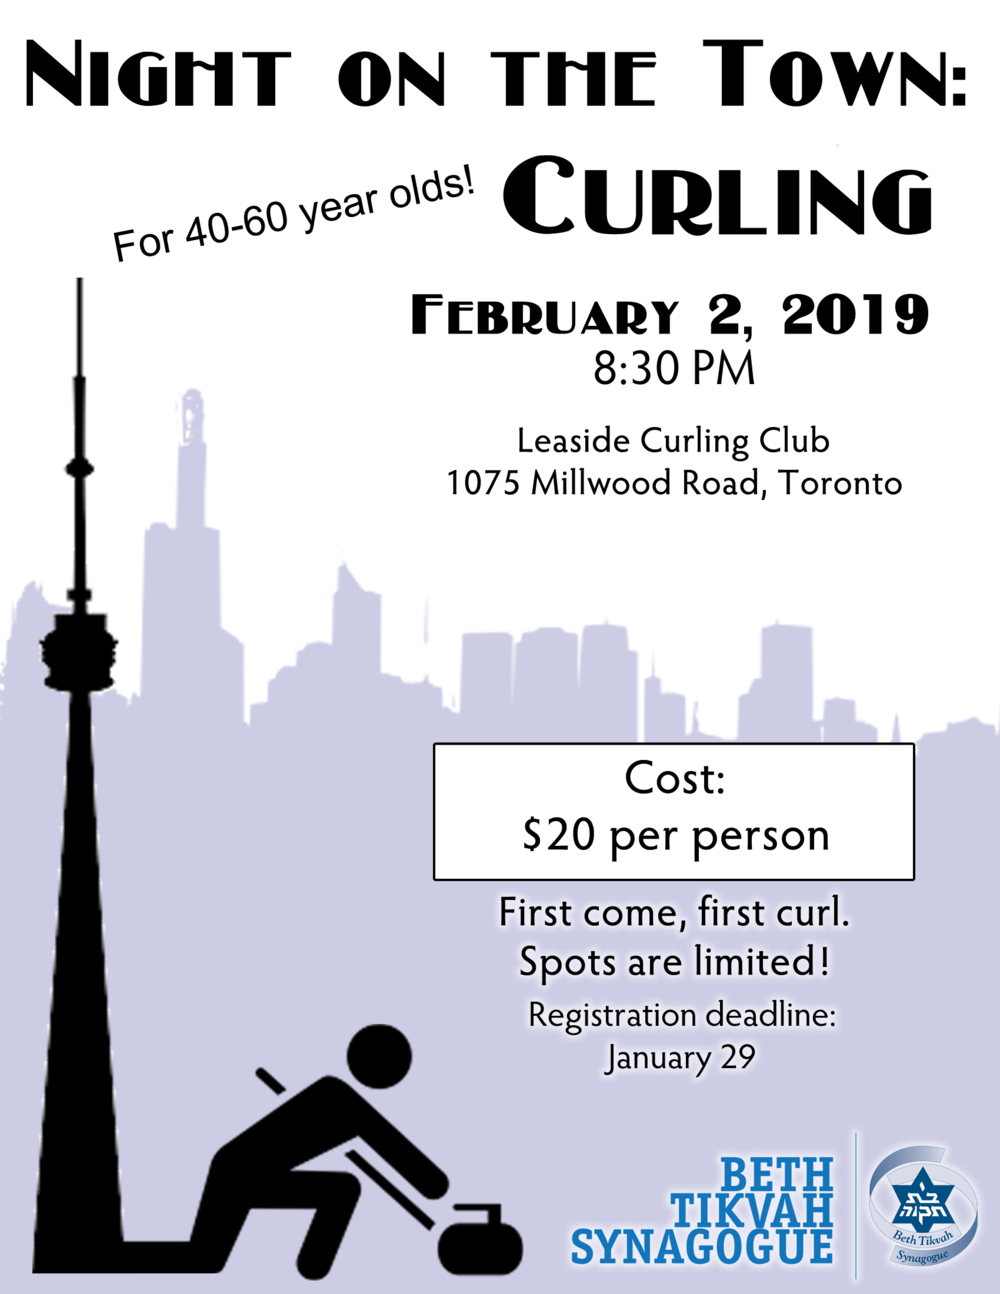 Night on Town Curling.fw.png